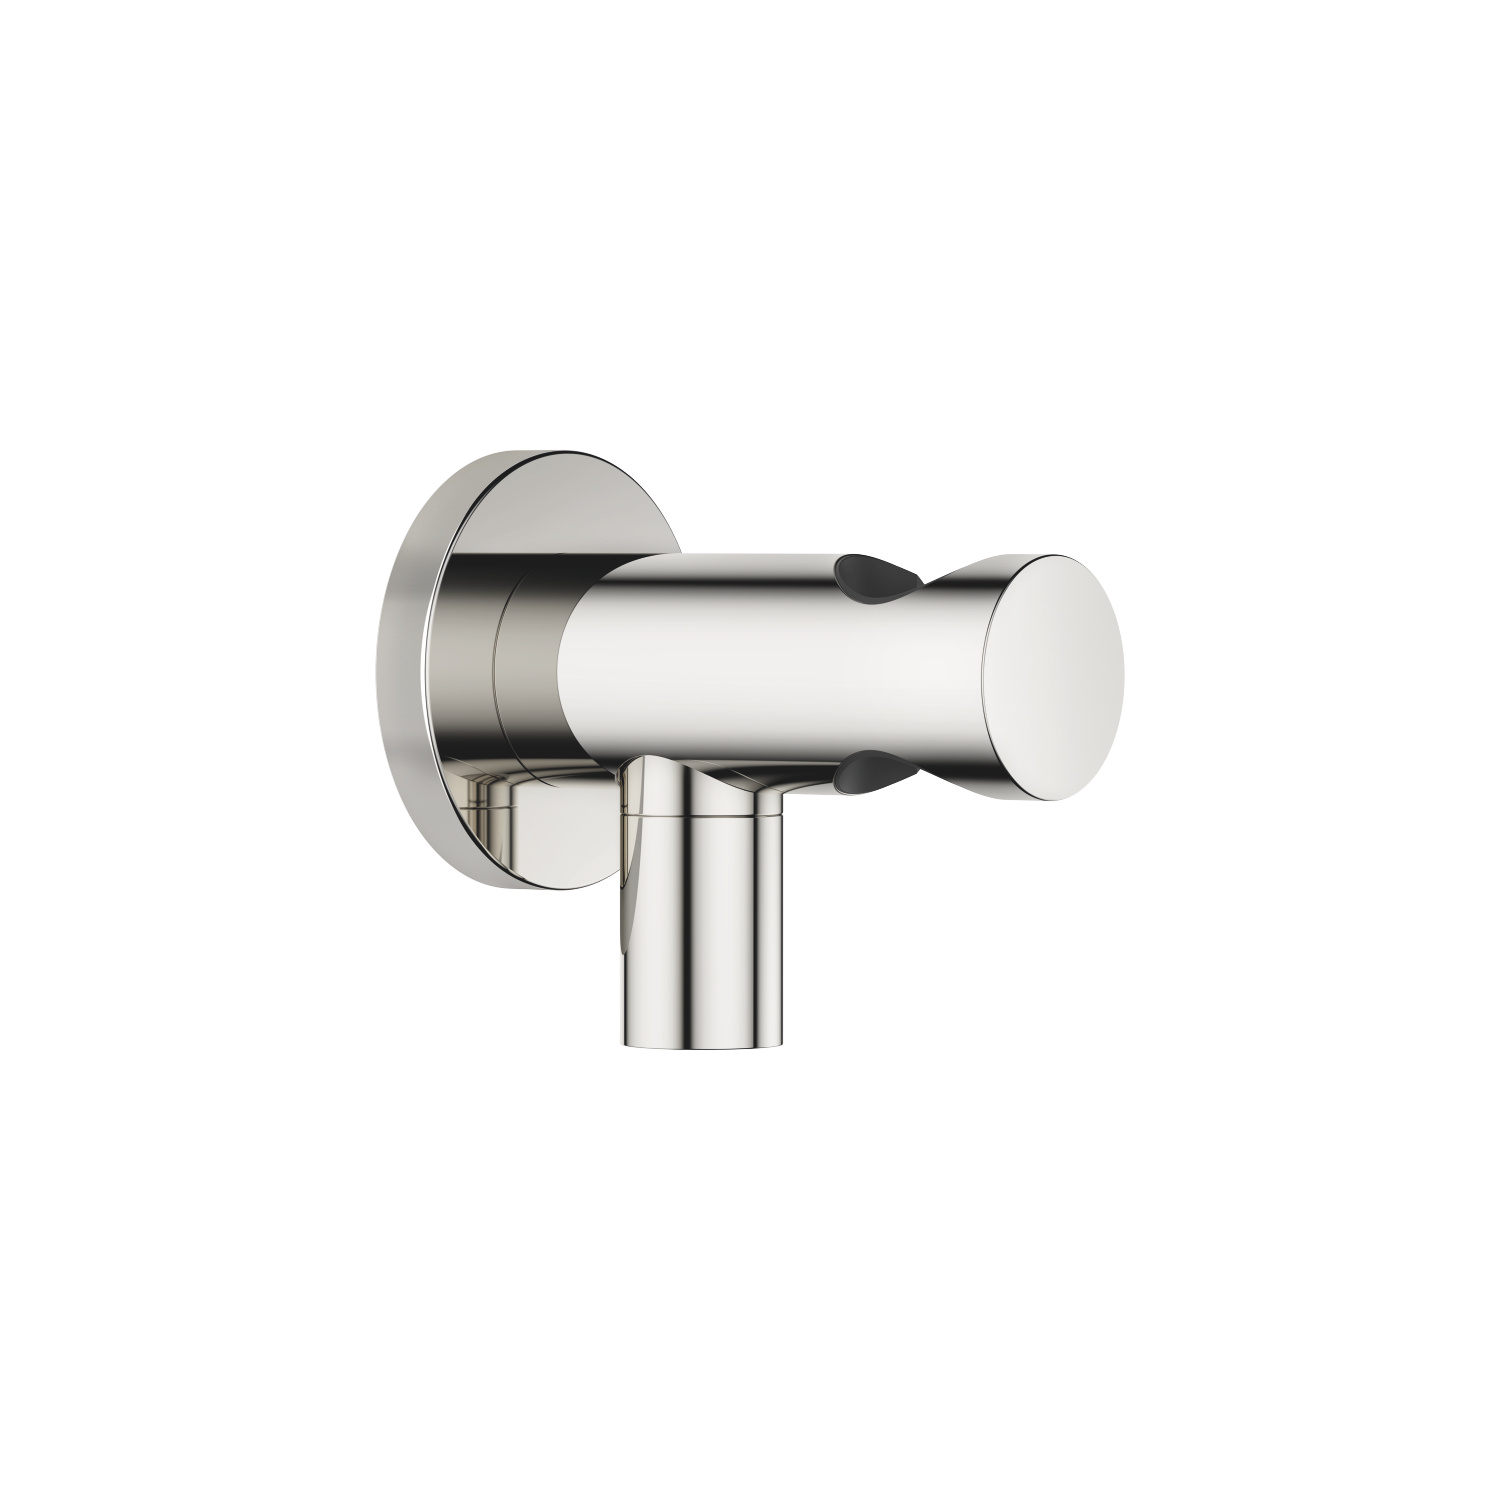 Wall elbow with integrated shower holder - platinum